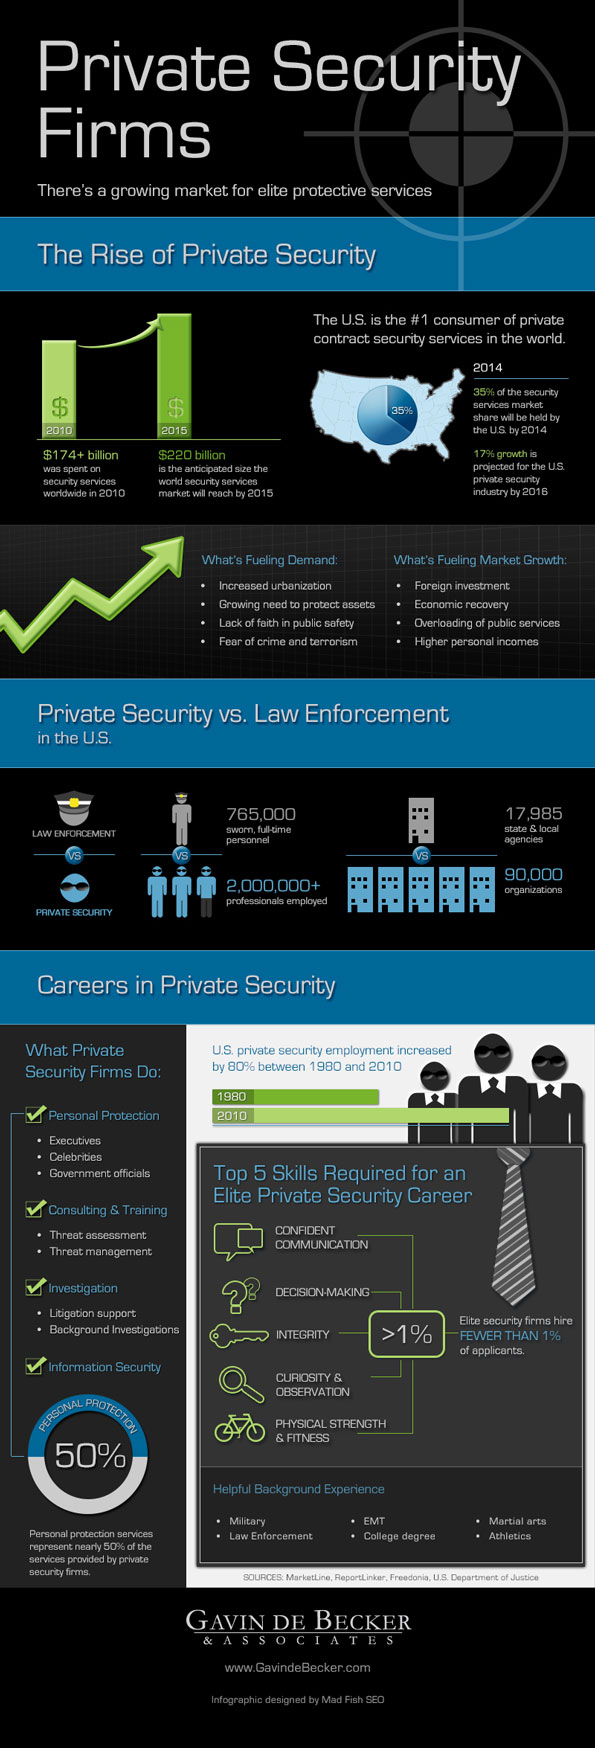 Private Security Firms: Elite as Law Enforcement